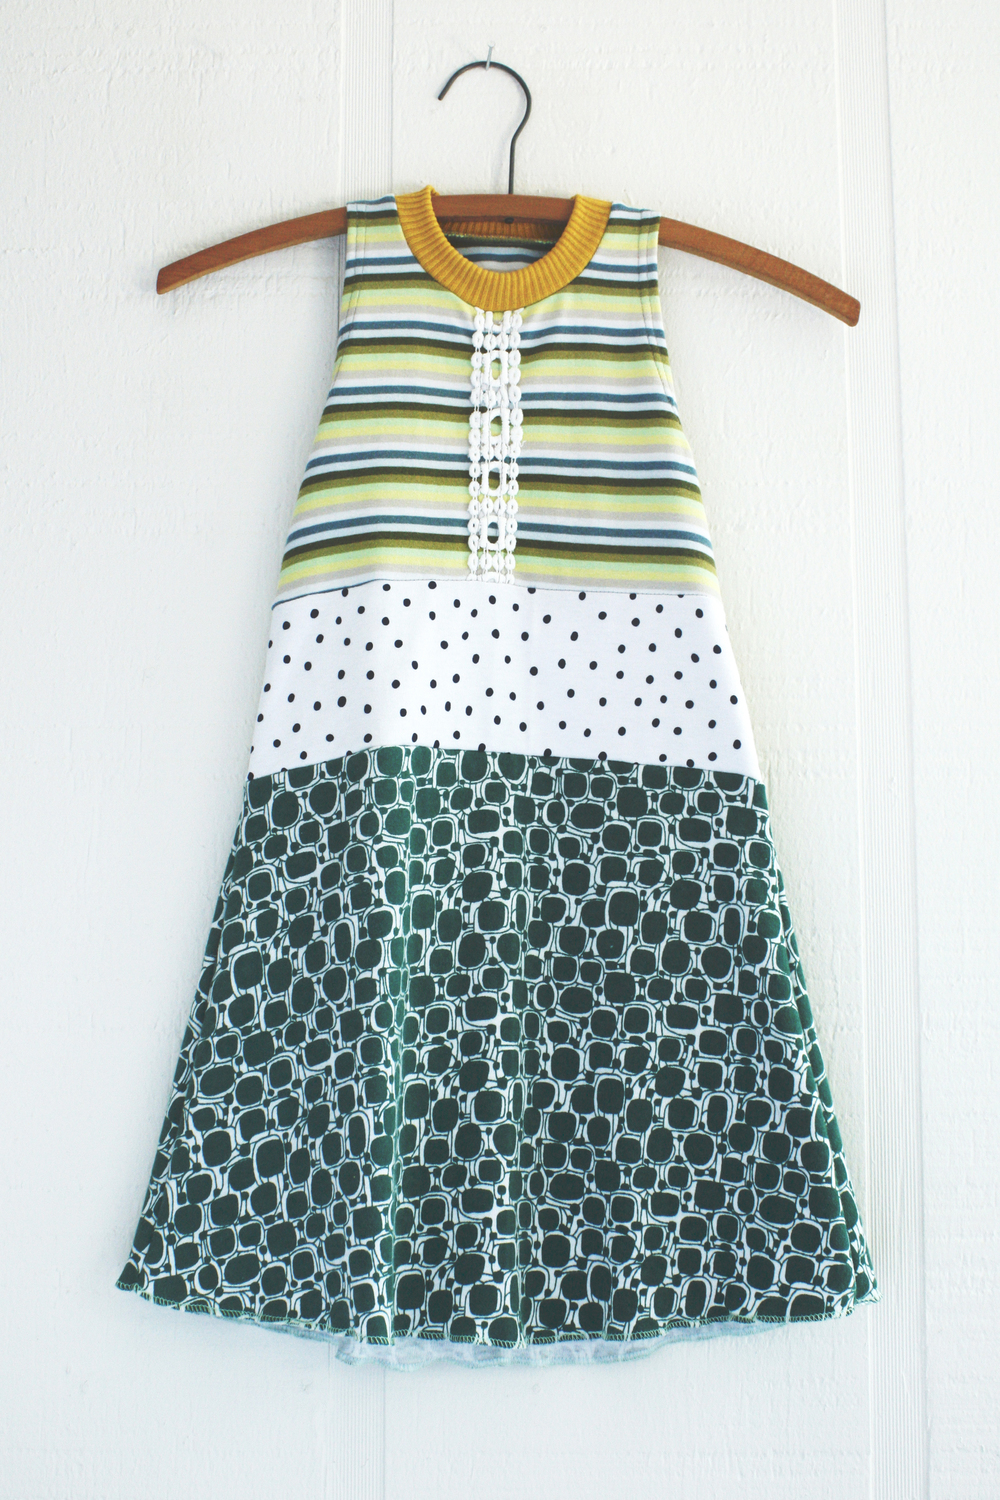 ⅘ trim:stripe:dots:retro:green.jpg